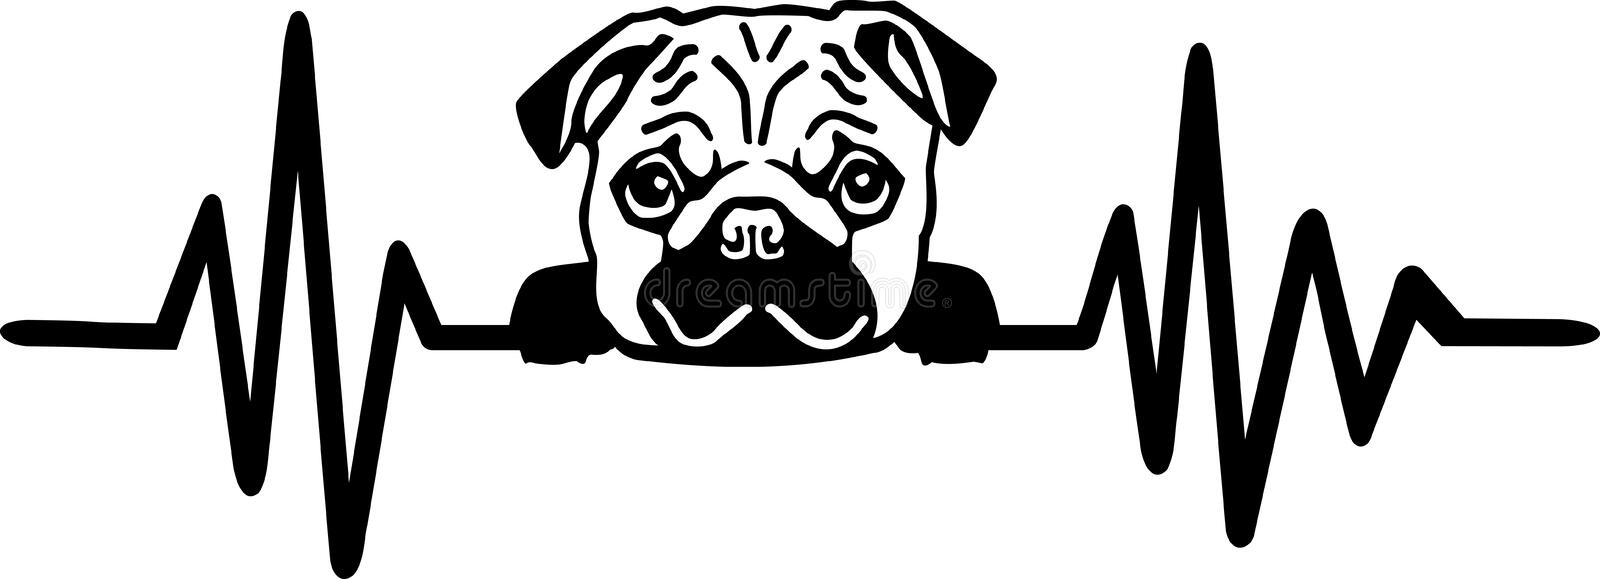 Dog heartbeat line with pug. Heartbeat pulse line dog with pug face black and white royalty free illustration